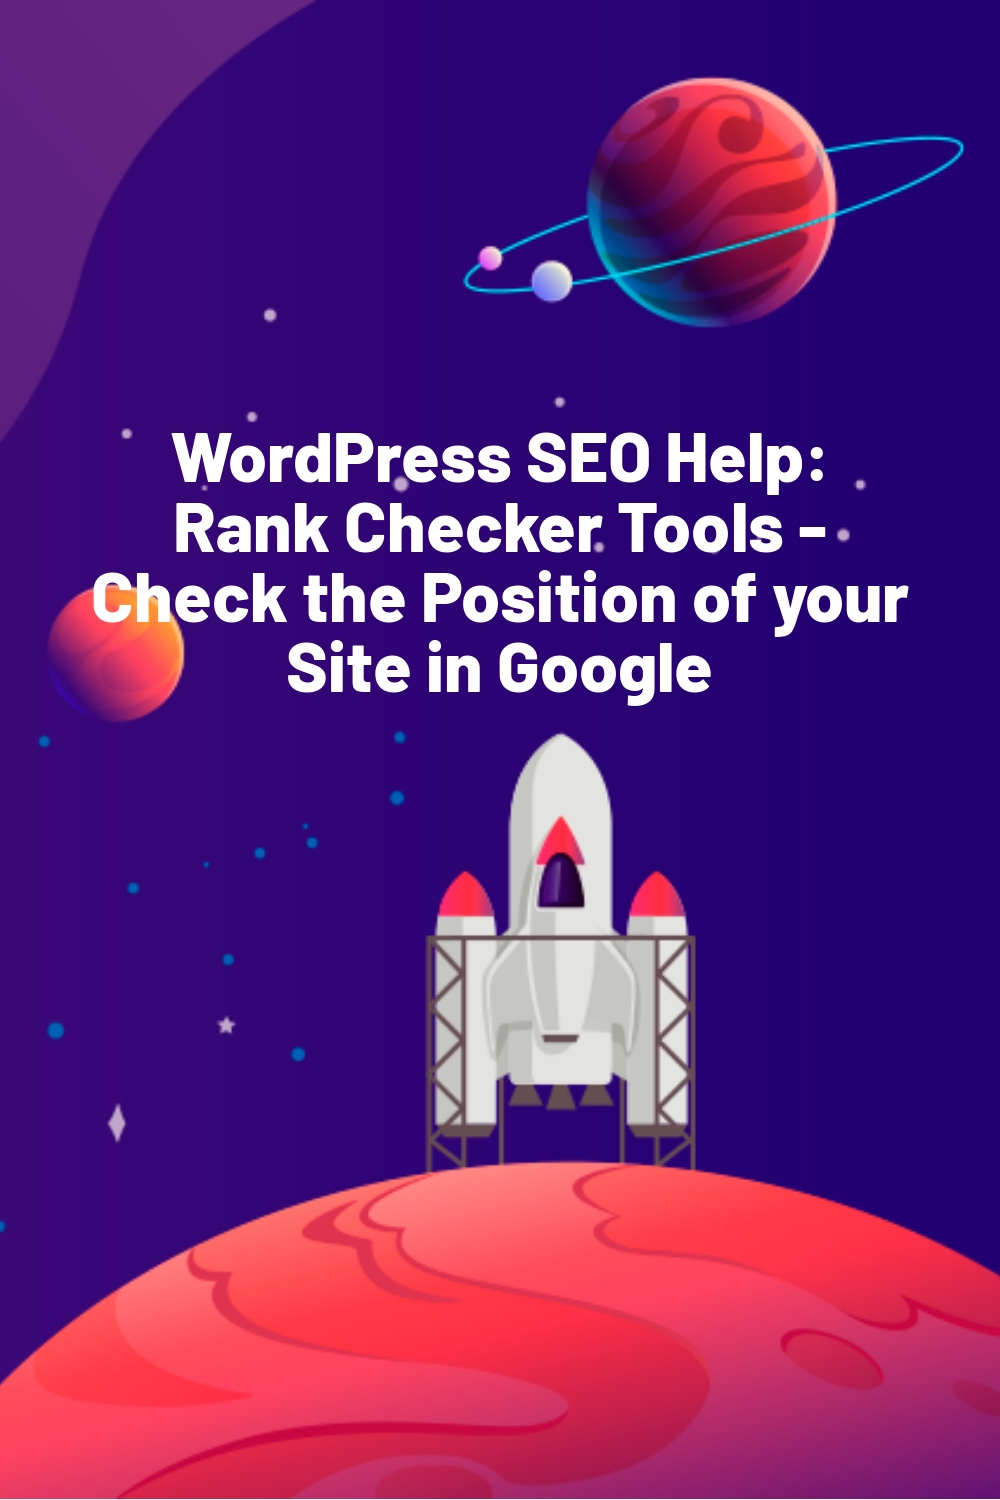 WordPress SEO Help: Rank Checker Tools – Check the Position of your Site in Google